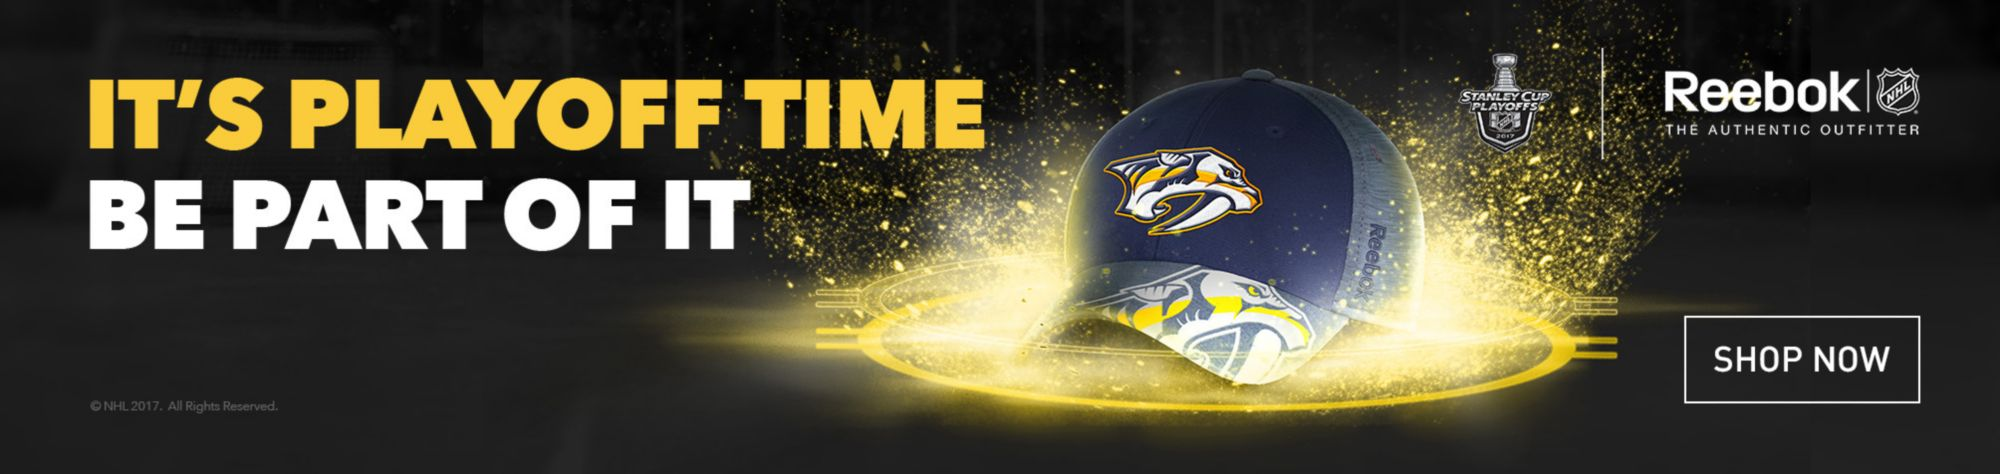 NHL Reebok Playoffs - Nashville Predators